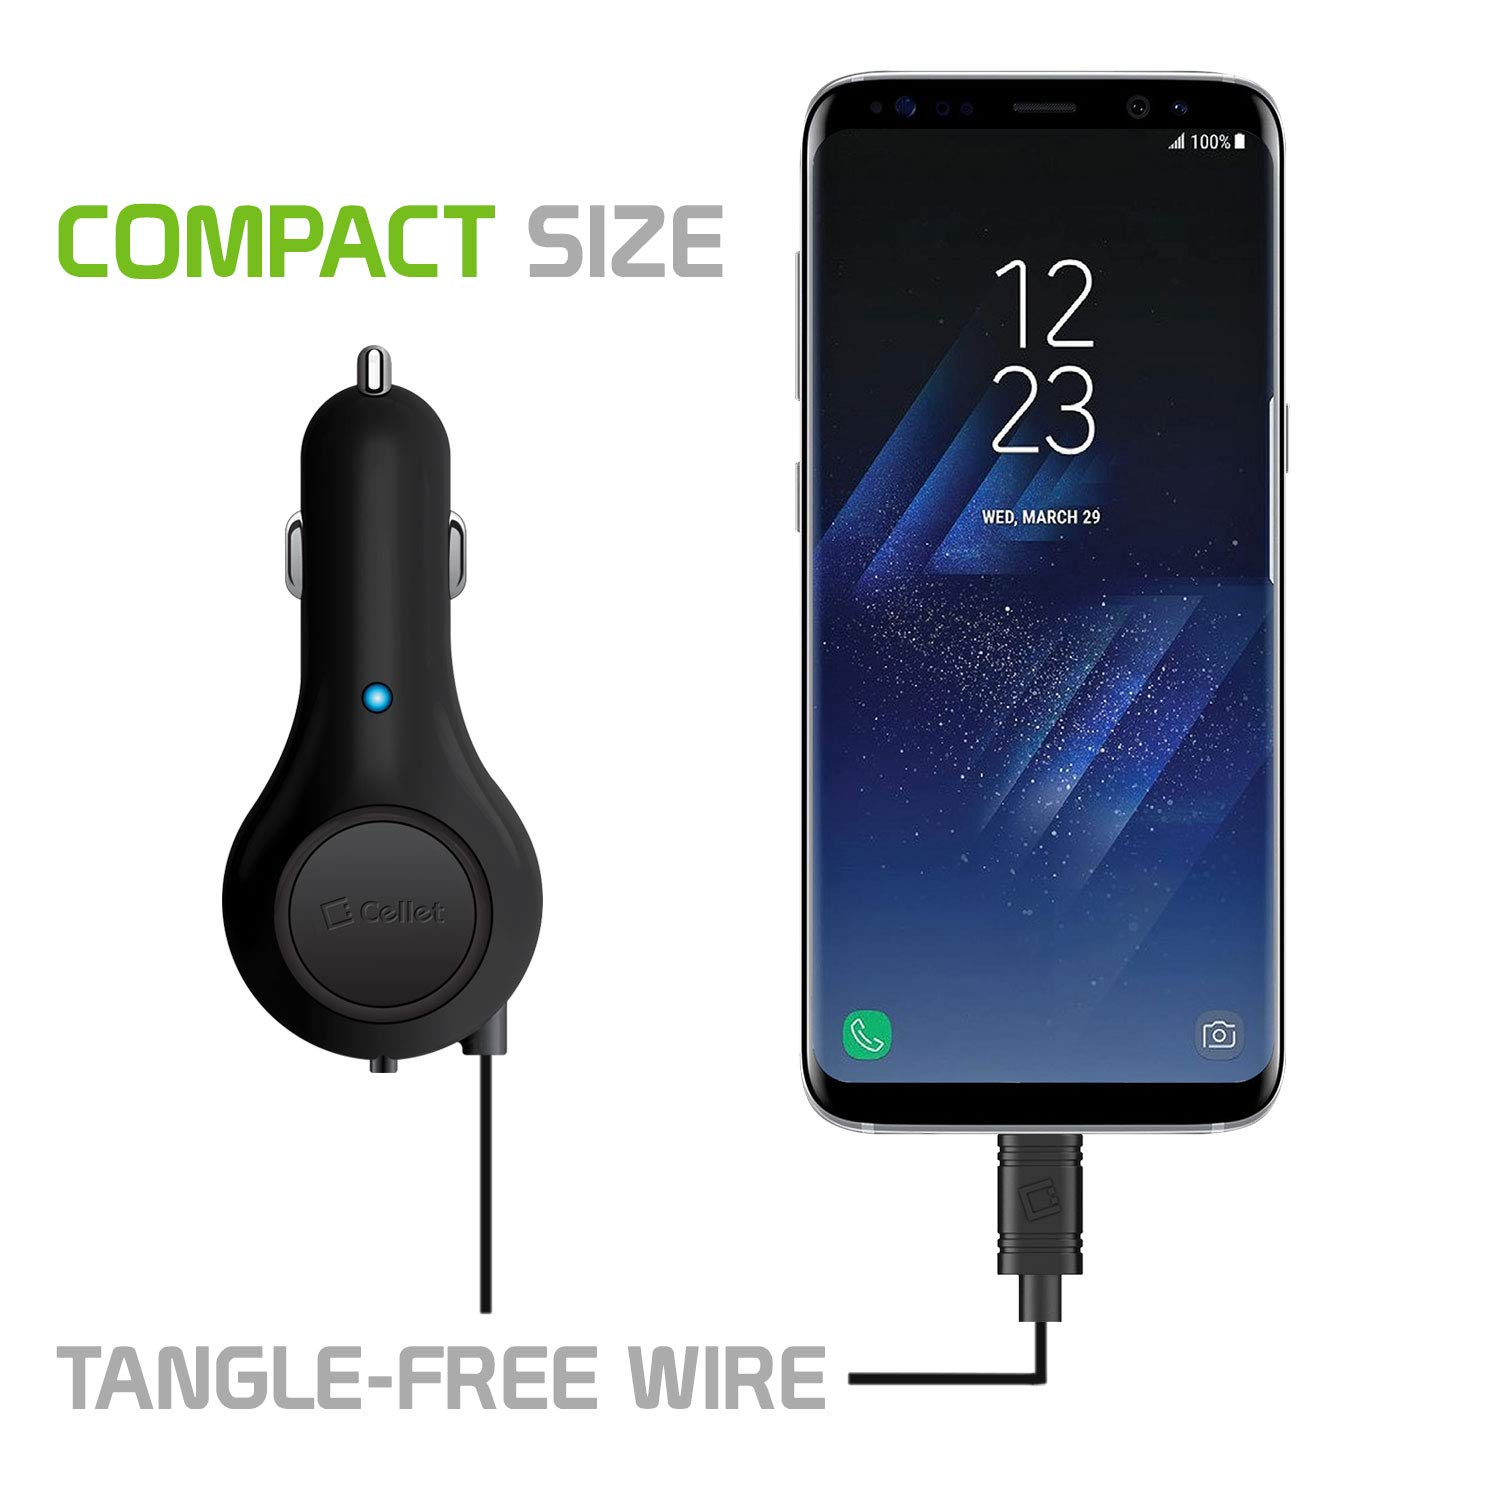 2.1 Amp Micro USB Car Charger Retractable 3 Feet Cable Compatible for ZTE Overture 3//Prelude Cellet 10 Watt ,2//Prestige 2//Quartz//Sonata 2//Paragon//Tempo X,Go//Z667//Zinger//Flame//Whirl 2